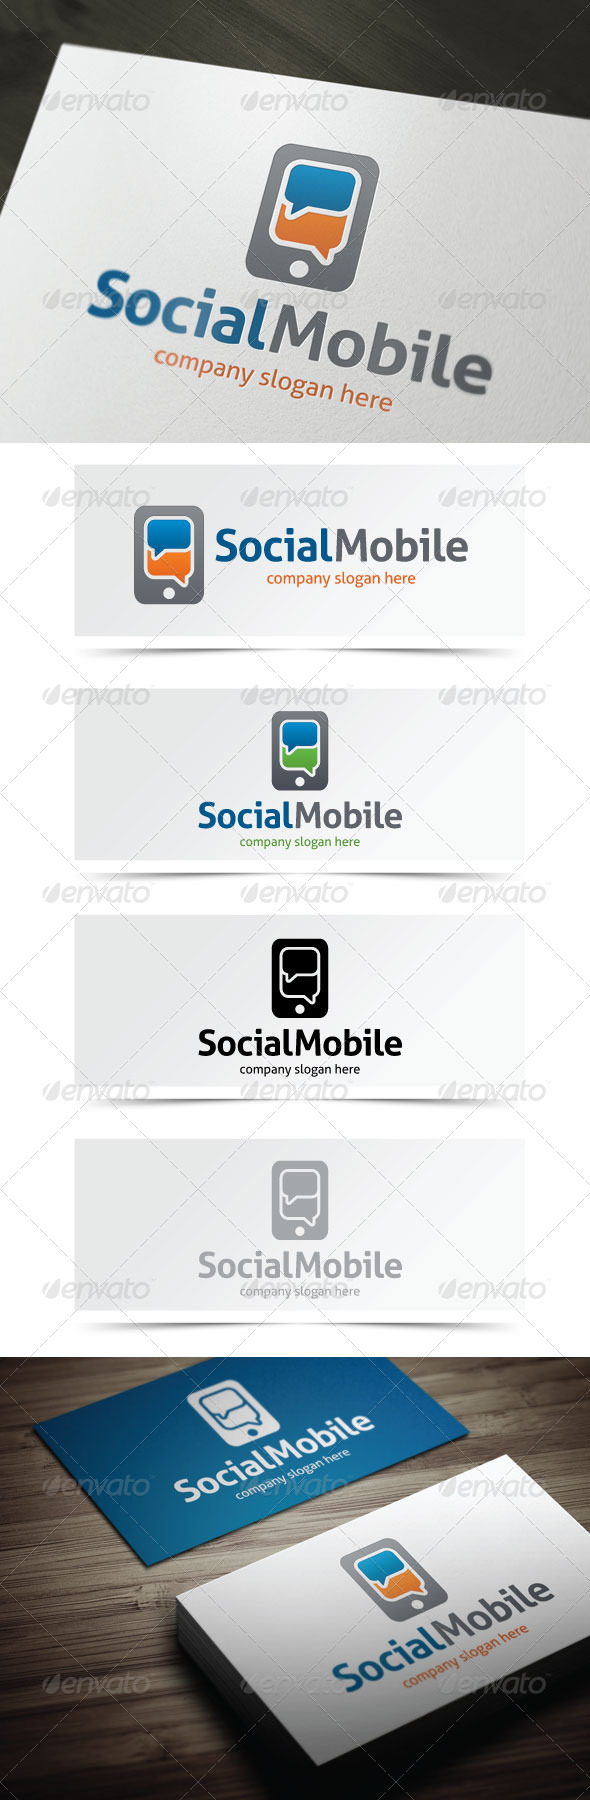 GraphicRiver Social Mobile 5437257